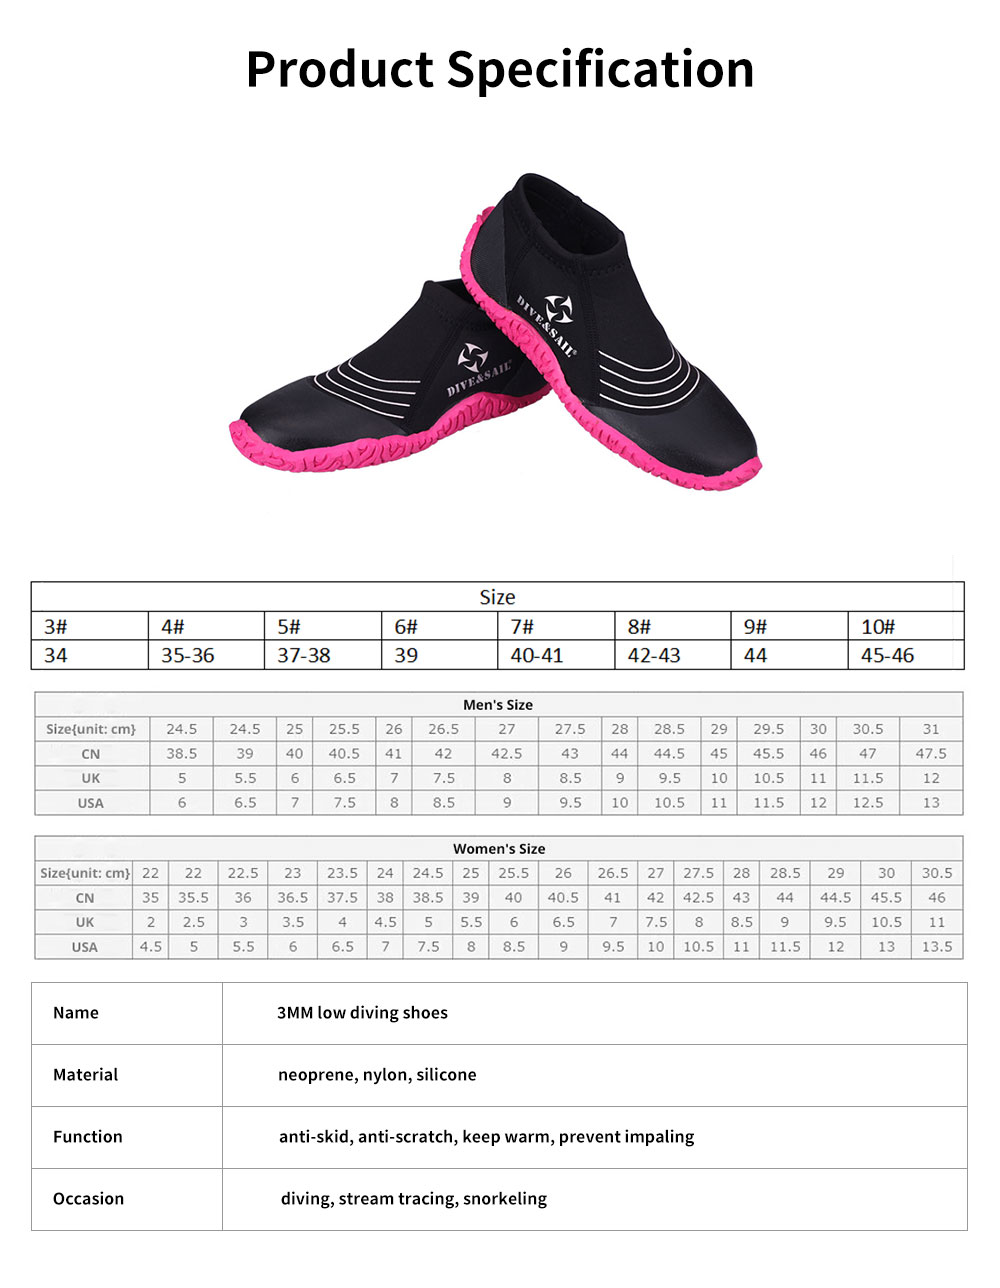 Diving Shoes with Neoprene Nylon Silicone Material, Anti-skid Prevent Scratch Sports Shoes for Men Women, River Tracing Keep Warm Snorkeling Fins Low Shoes 6